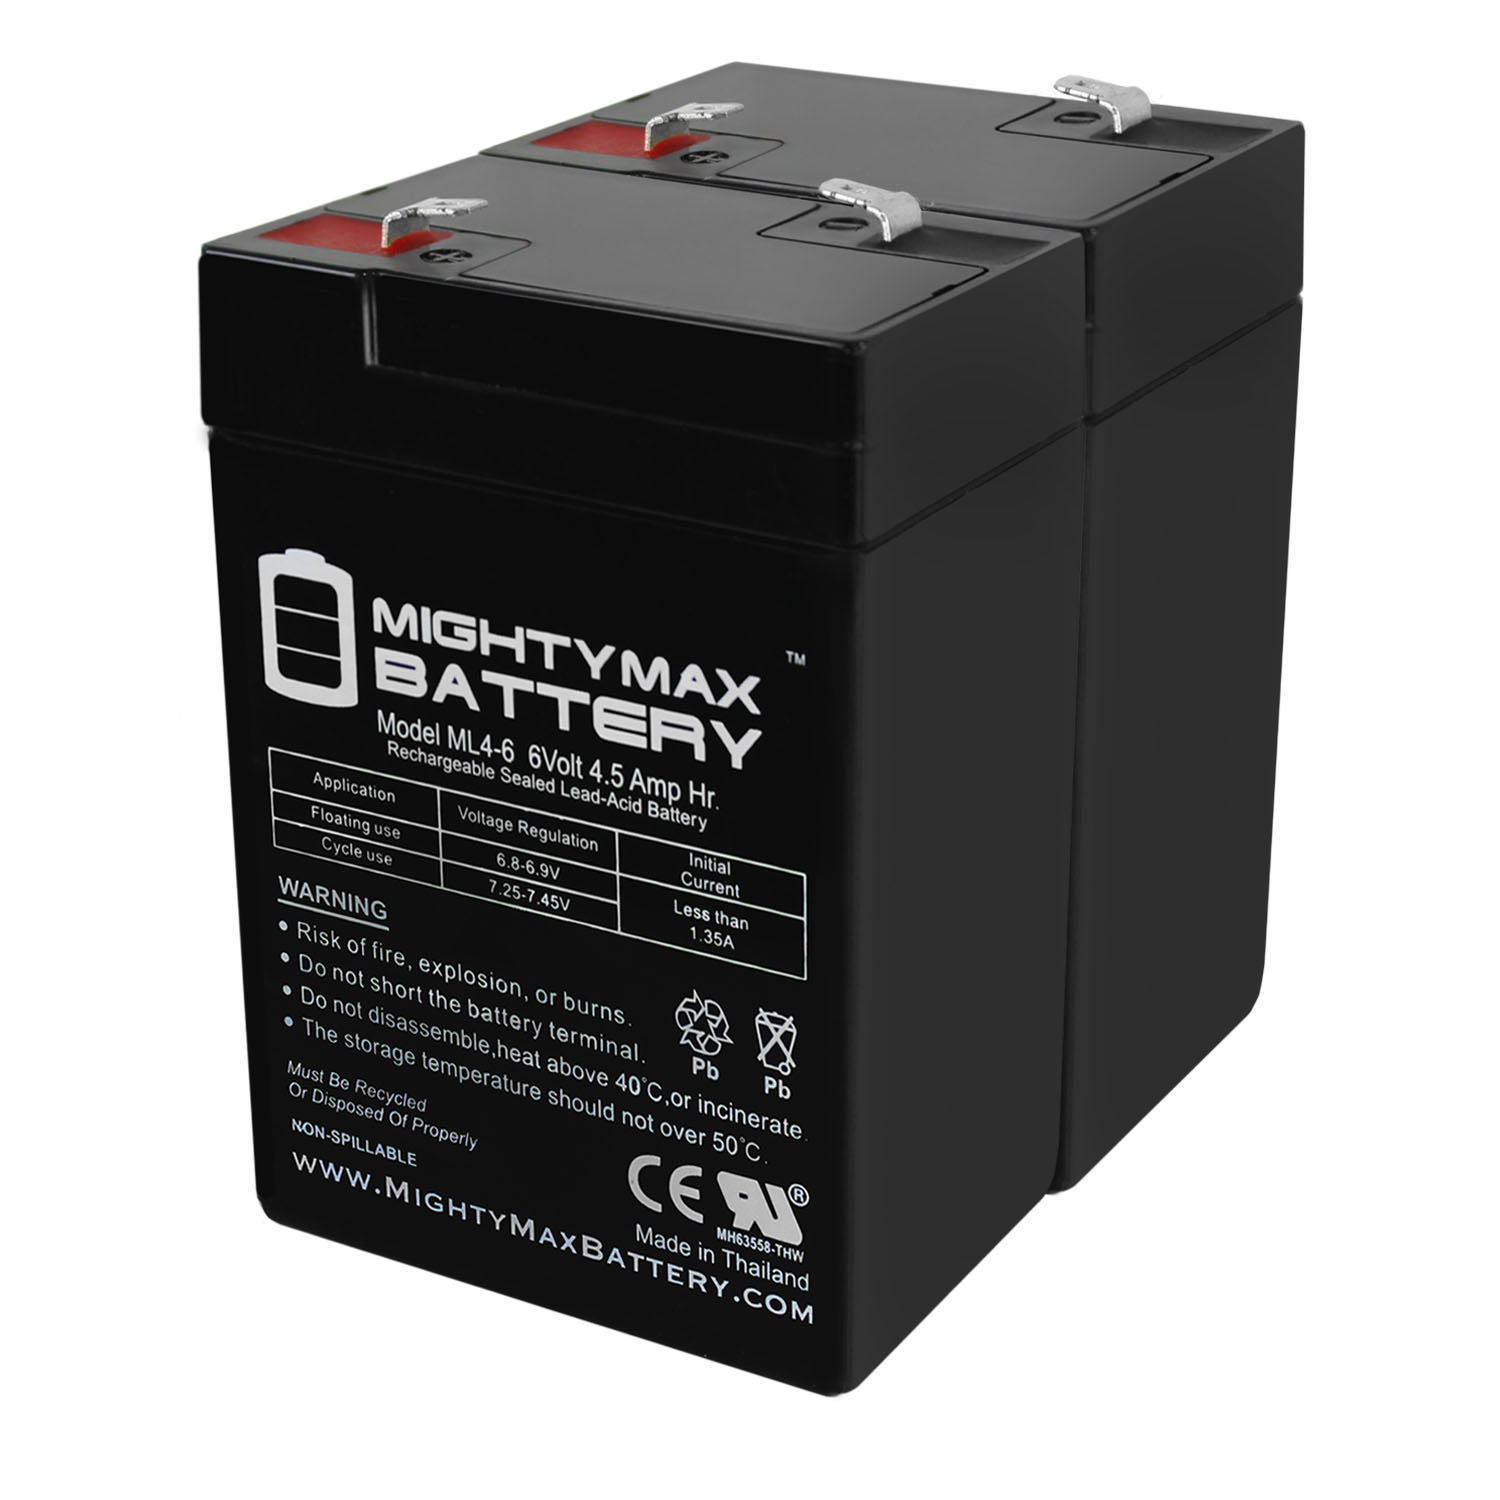 ML4-6 - 6V 4.5AH Replaces APC 200DL Battery - 2 Pack